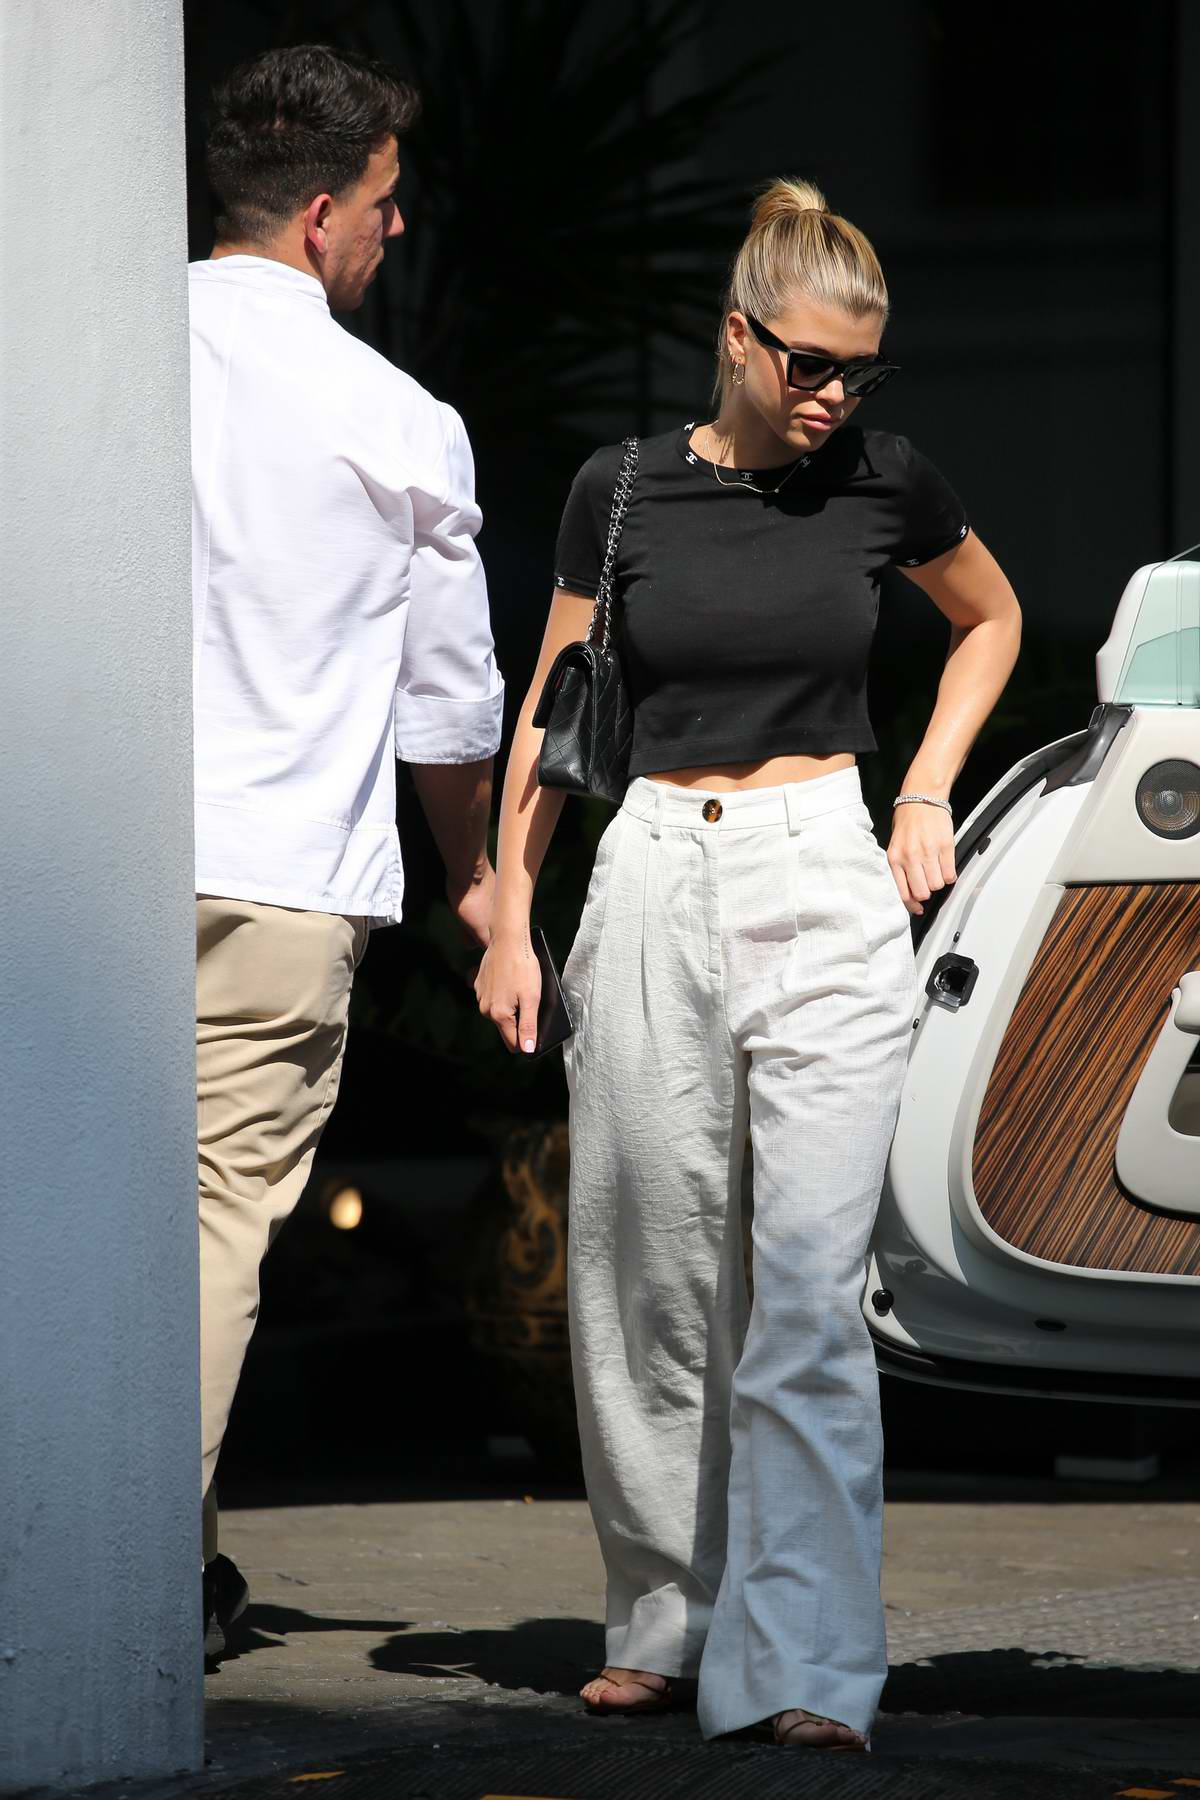 Sofia Richie keeps it casual in a black top and white trousers while out in Miami, Florida